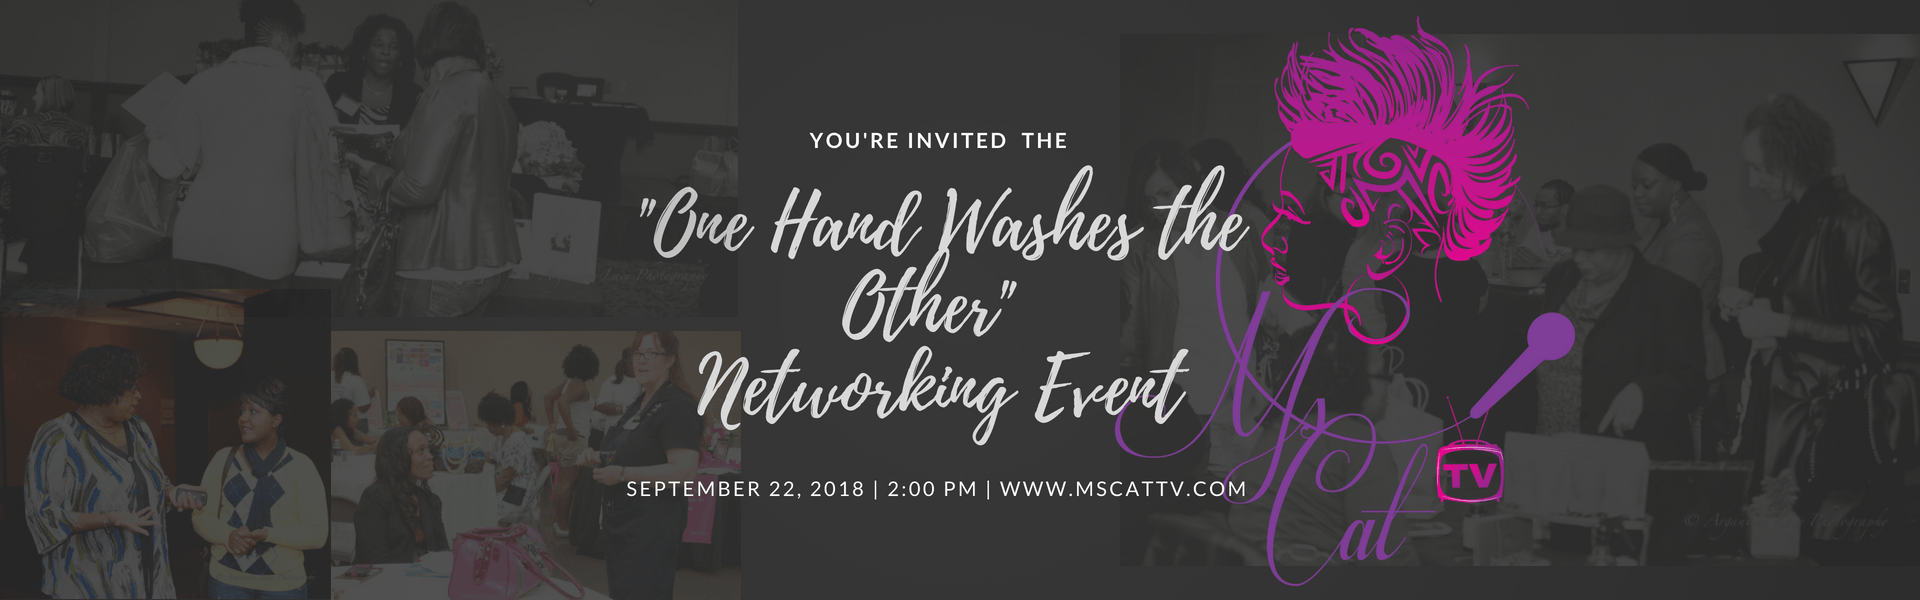 """One Hand Washes the Other"" Networking Event"